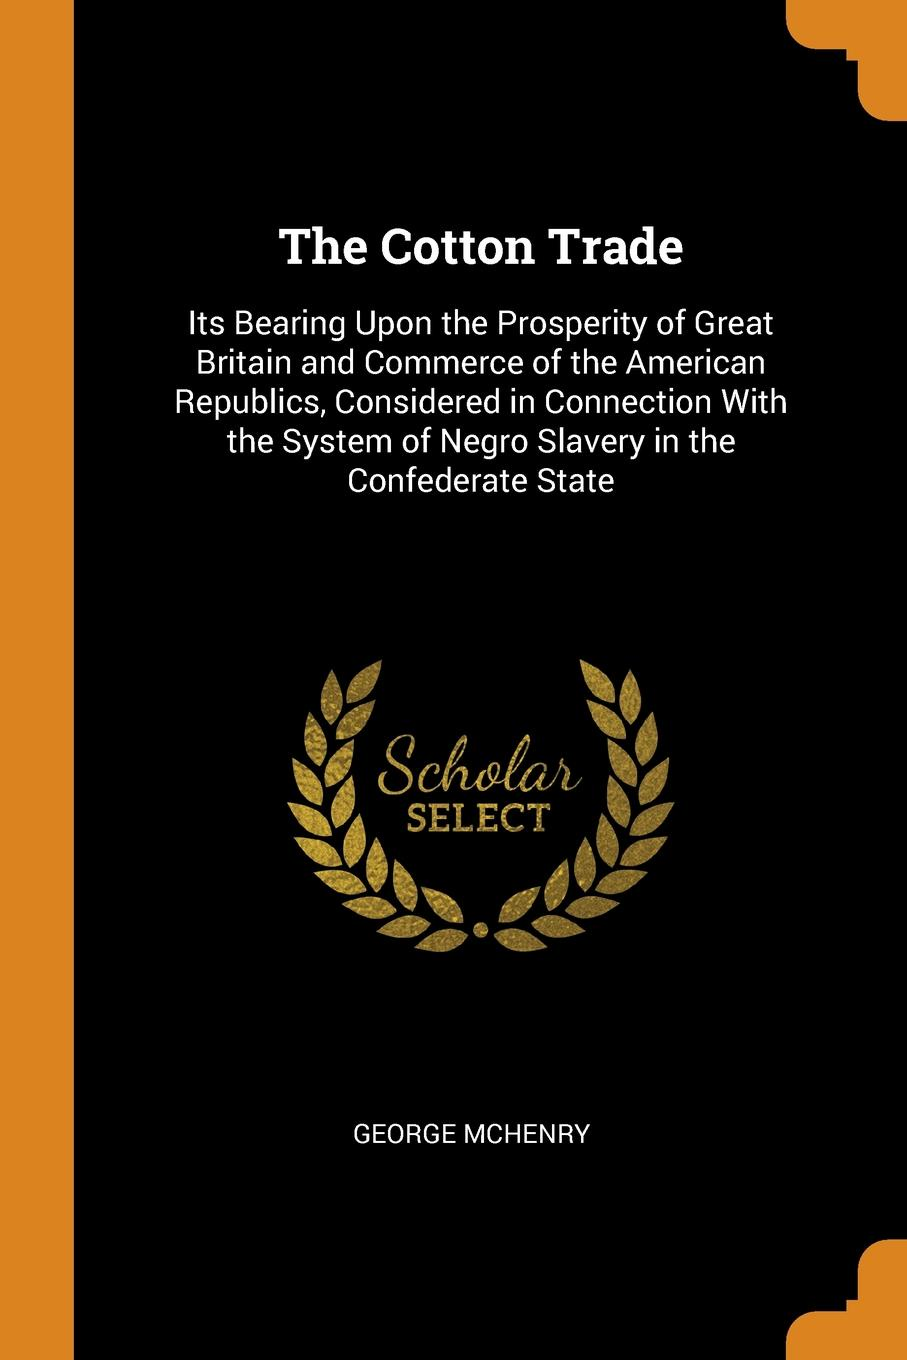 The Cotton Trade. Its Bearing Upon the Prosperity of Great Britain and Commerce of the American Republics, Considered in Connection With the System of Negro Slavery in the Confederate State This work has been selected by scholars as being culturally important...